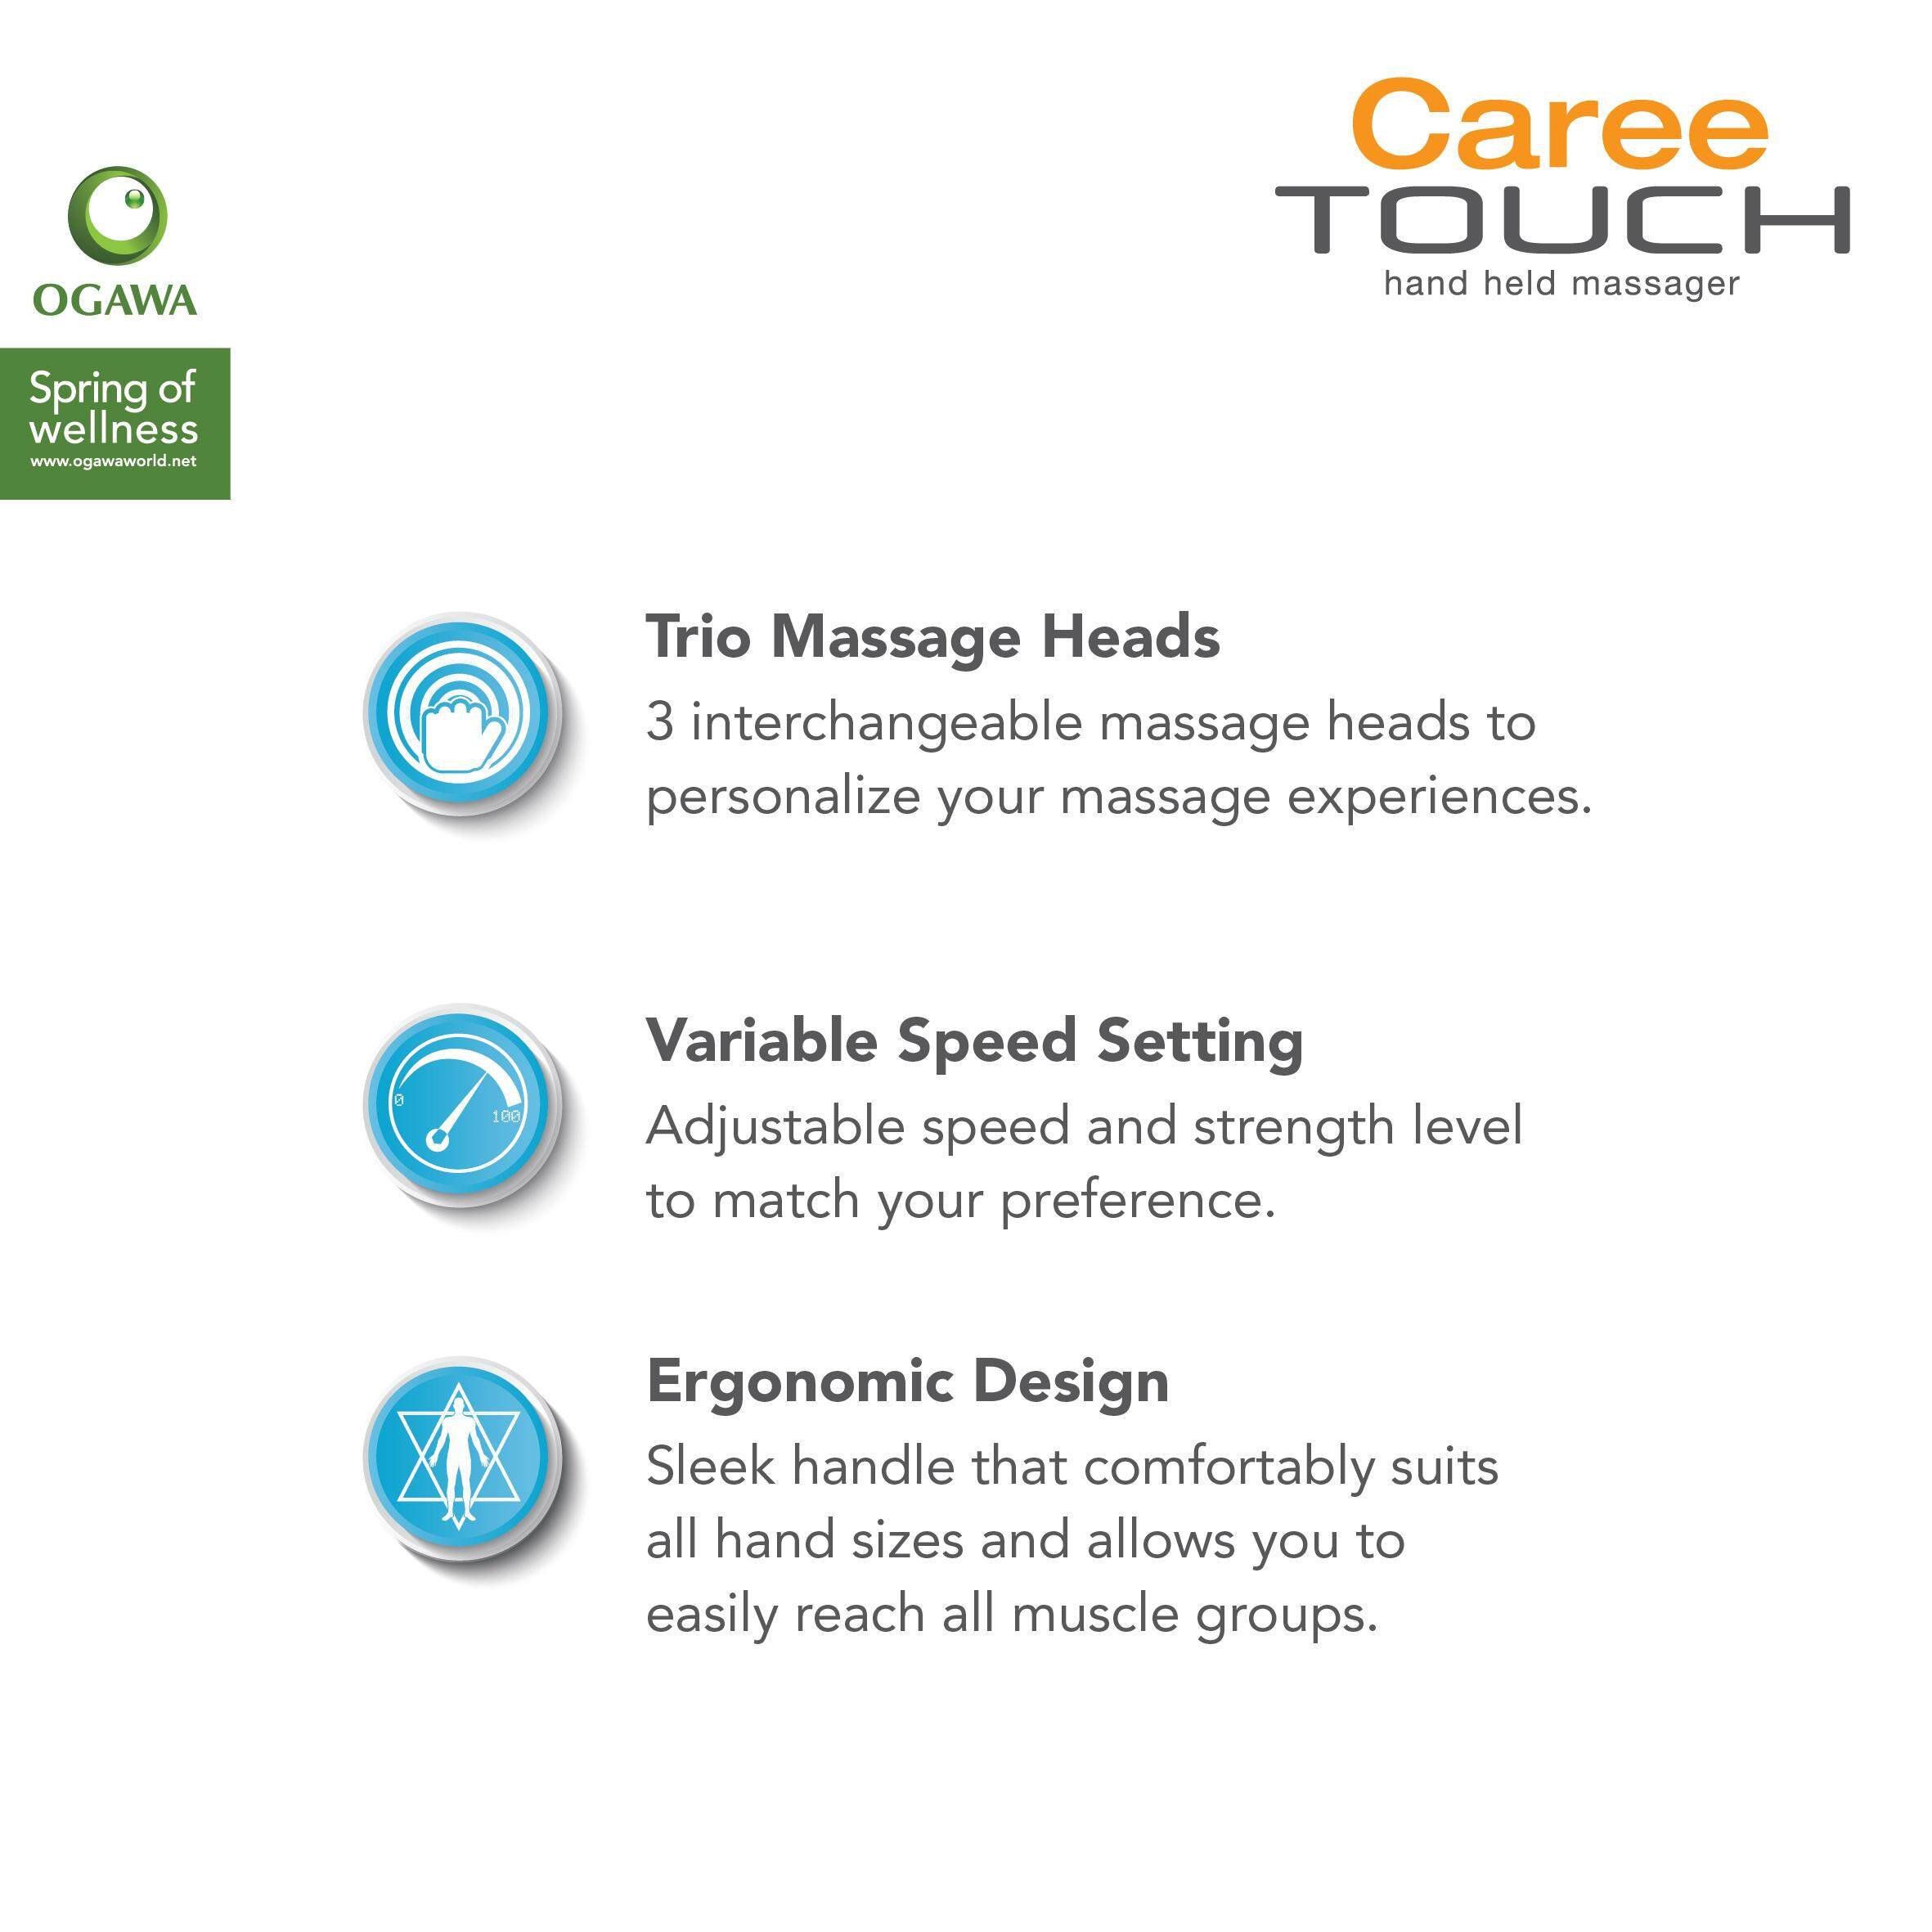 Caree Touch-04.jpg